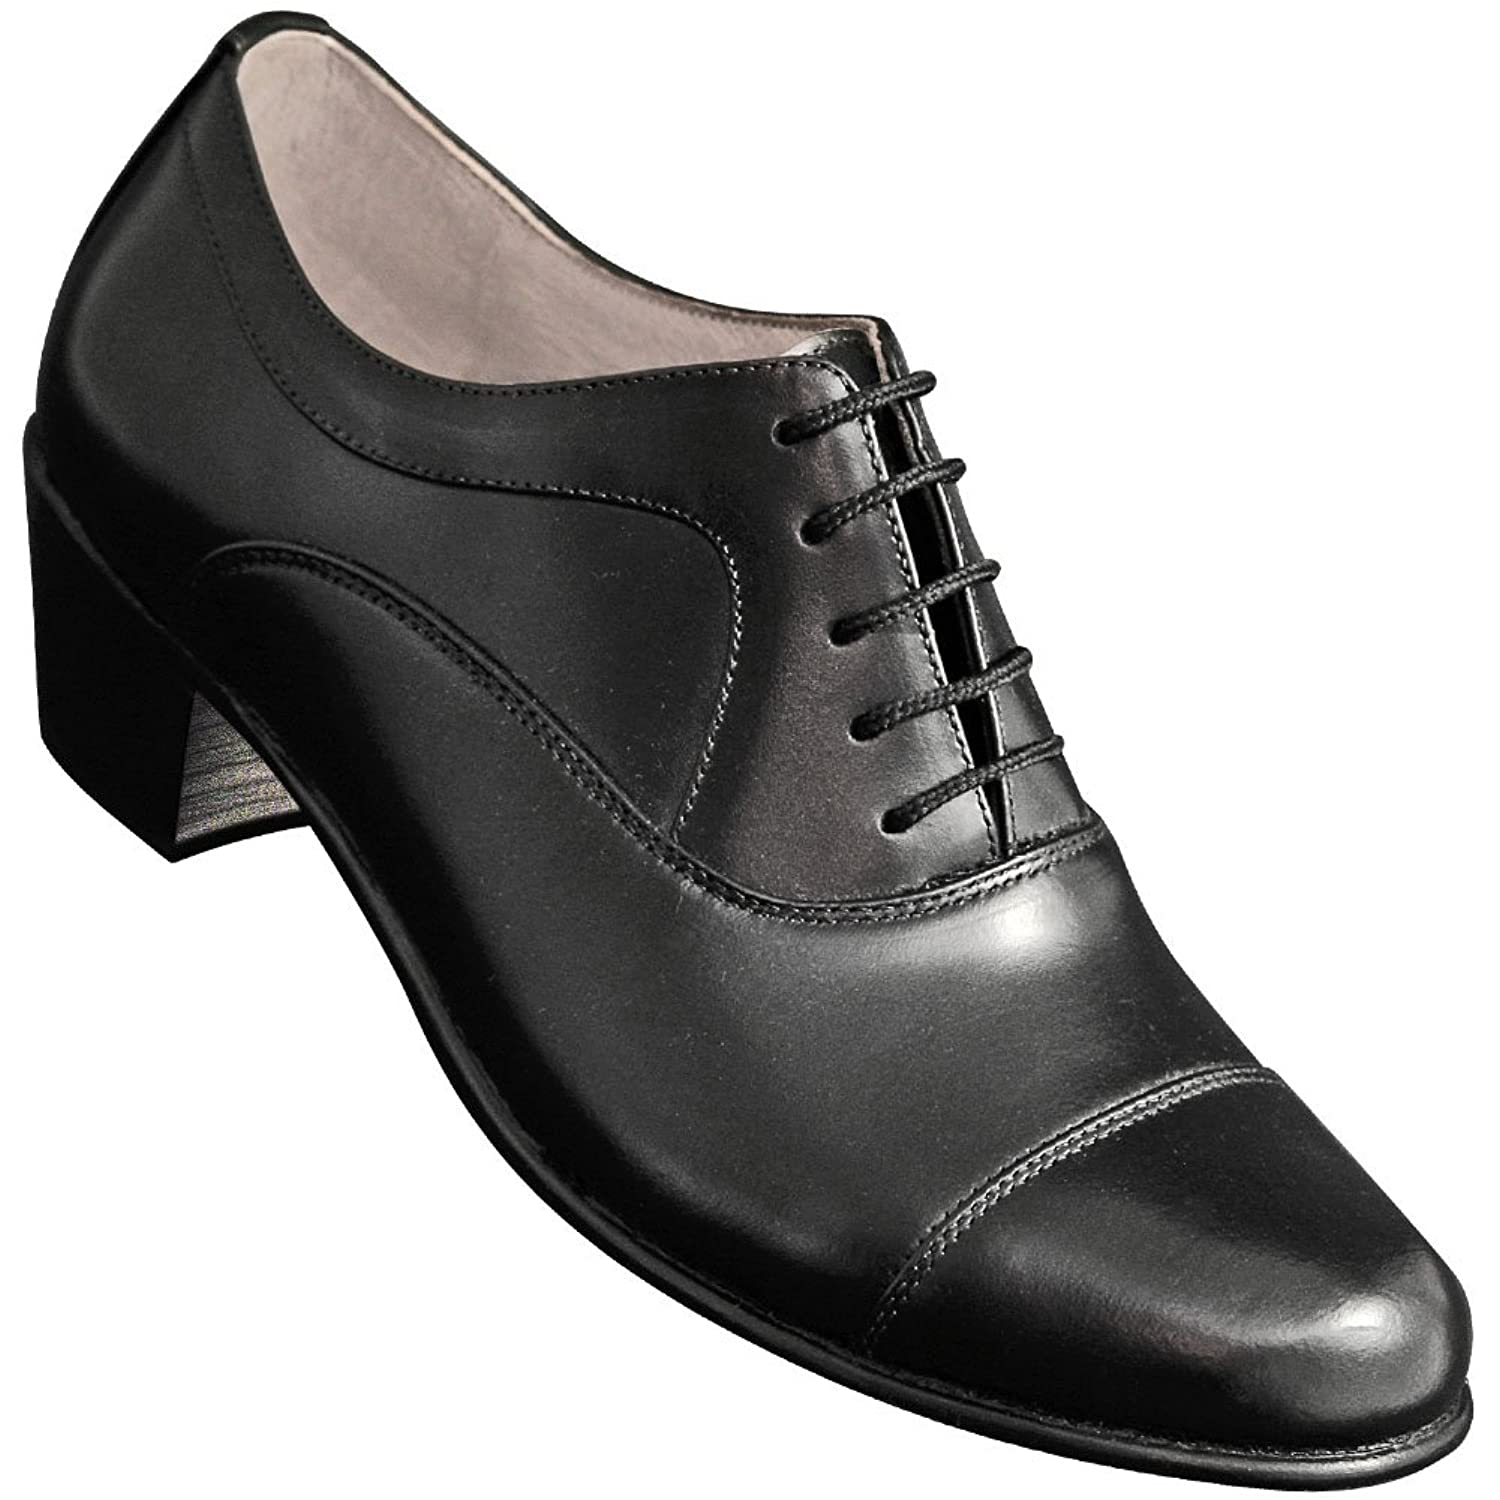 Rockabilly Men's Clothing Aris Allen Mens Captoe Tango Dance Shoe $74.95 AT vintagedancer.com